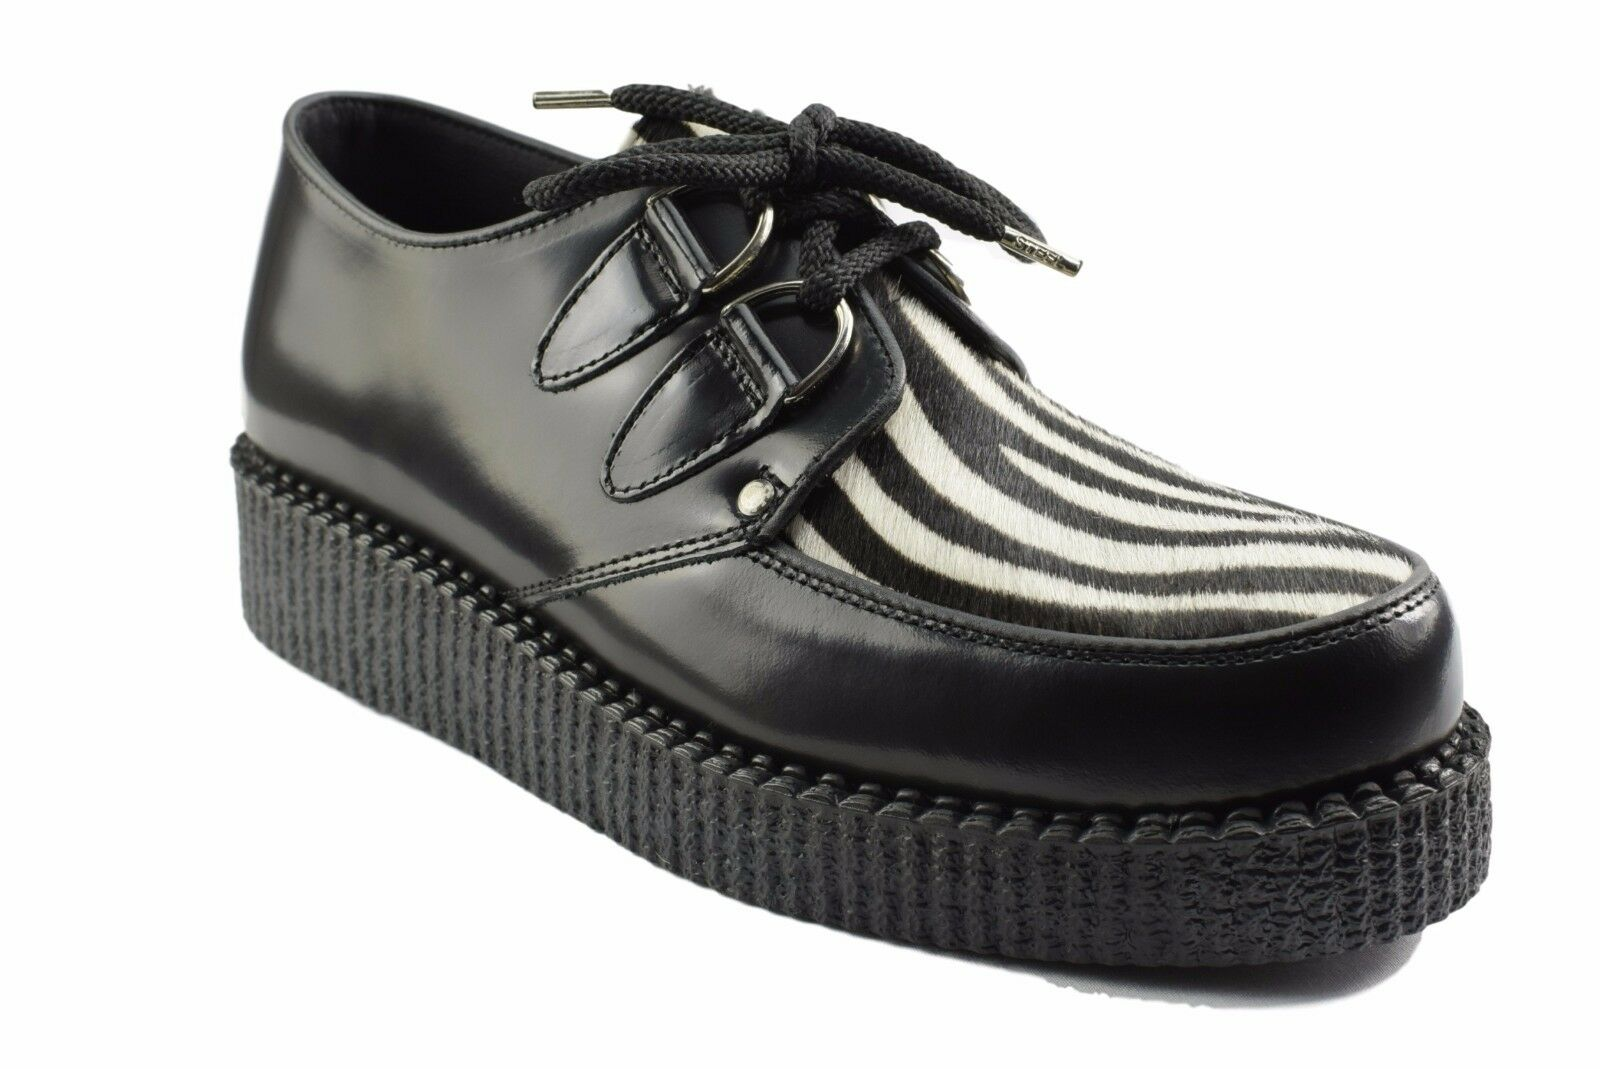 Steel Ground Schuhes schwarz Leder Zebra Hair Creepers Low Sole D Ring Casual